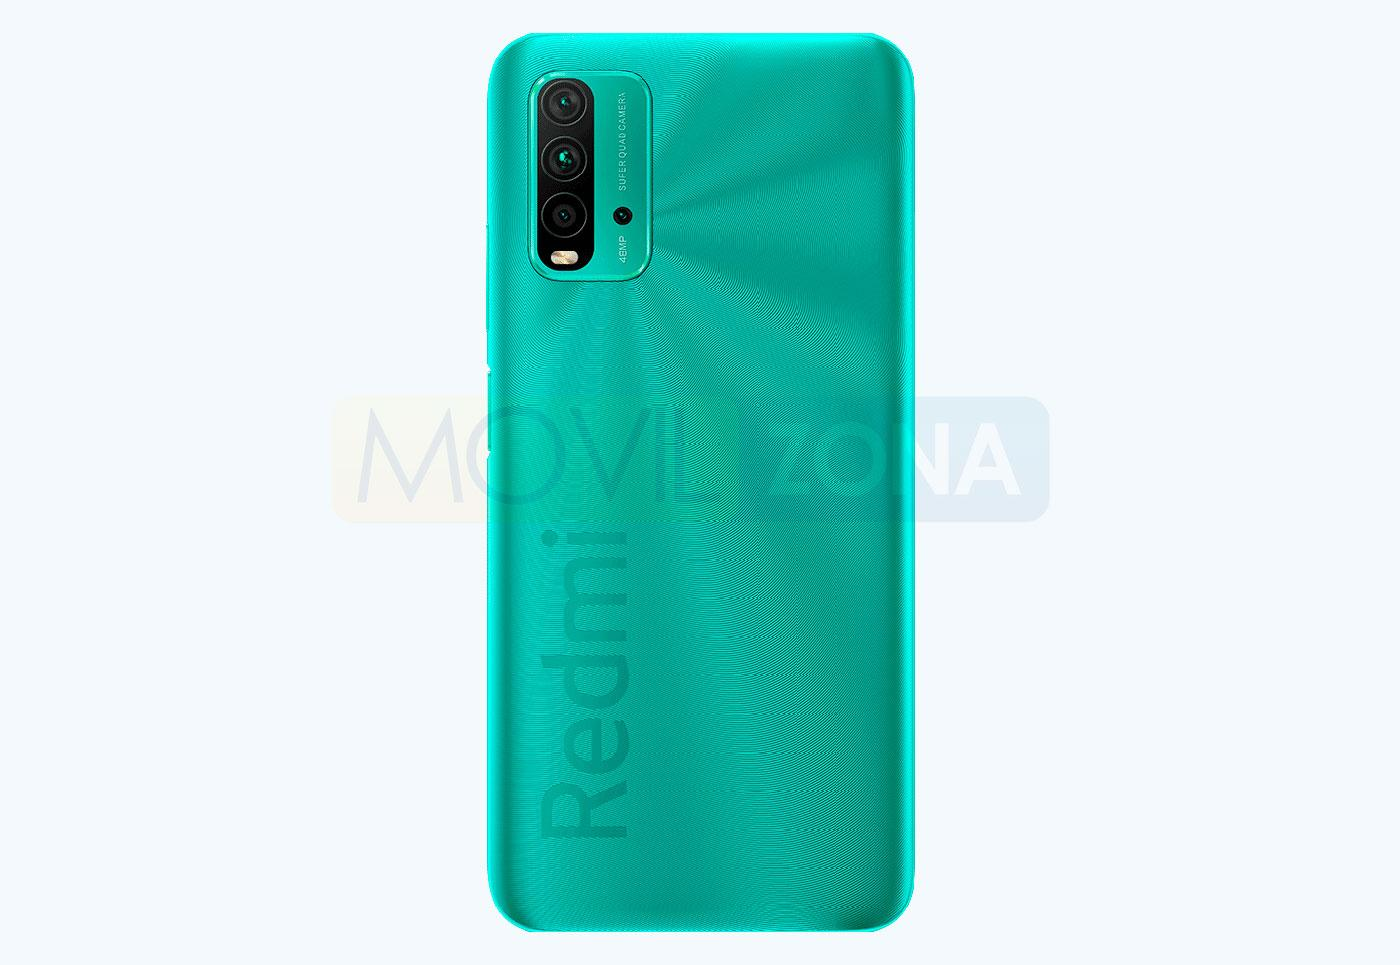 redmi 9 Power verde